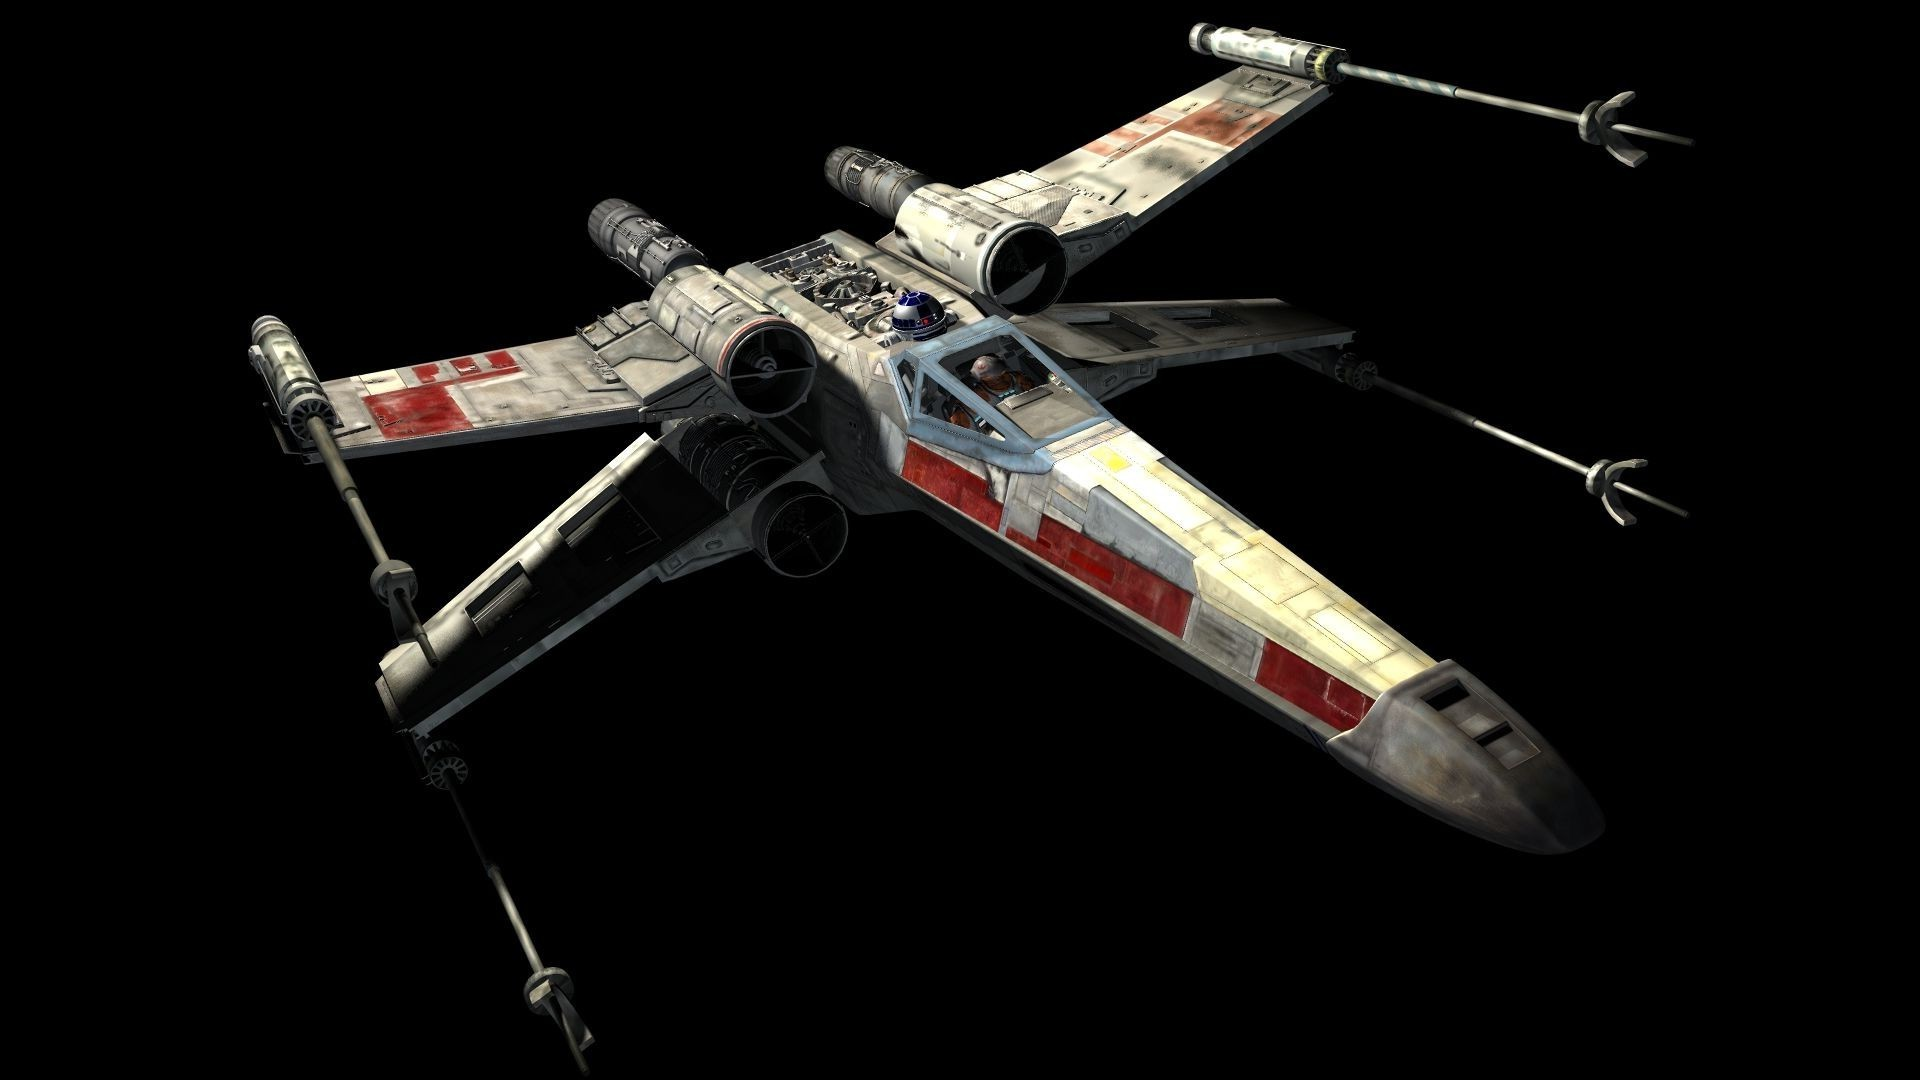 Star Wars, X wing, Space, Movies, Black Background Wallpapers HD / Desktop  and Mobile Backgrounds